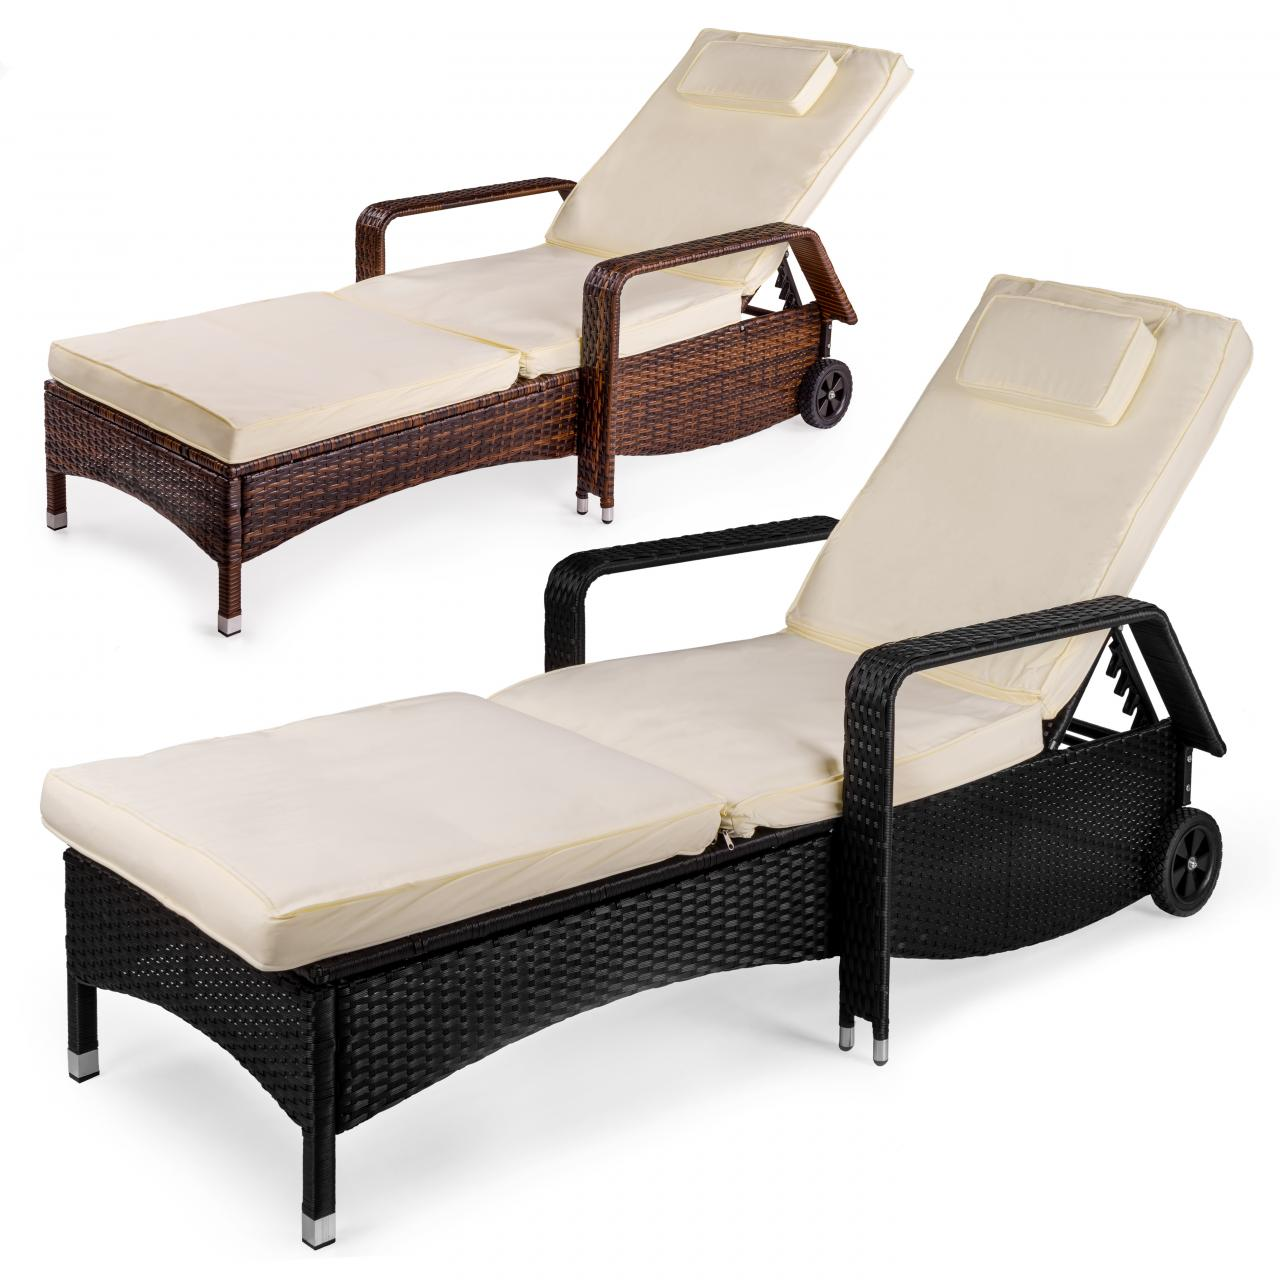 polyrattan sonnenliege gartenliege garten rattan liege gartenm bel rattanm bel ebay. Black Bedroom Furniture Sets. Home Design Ideas